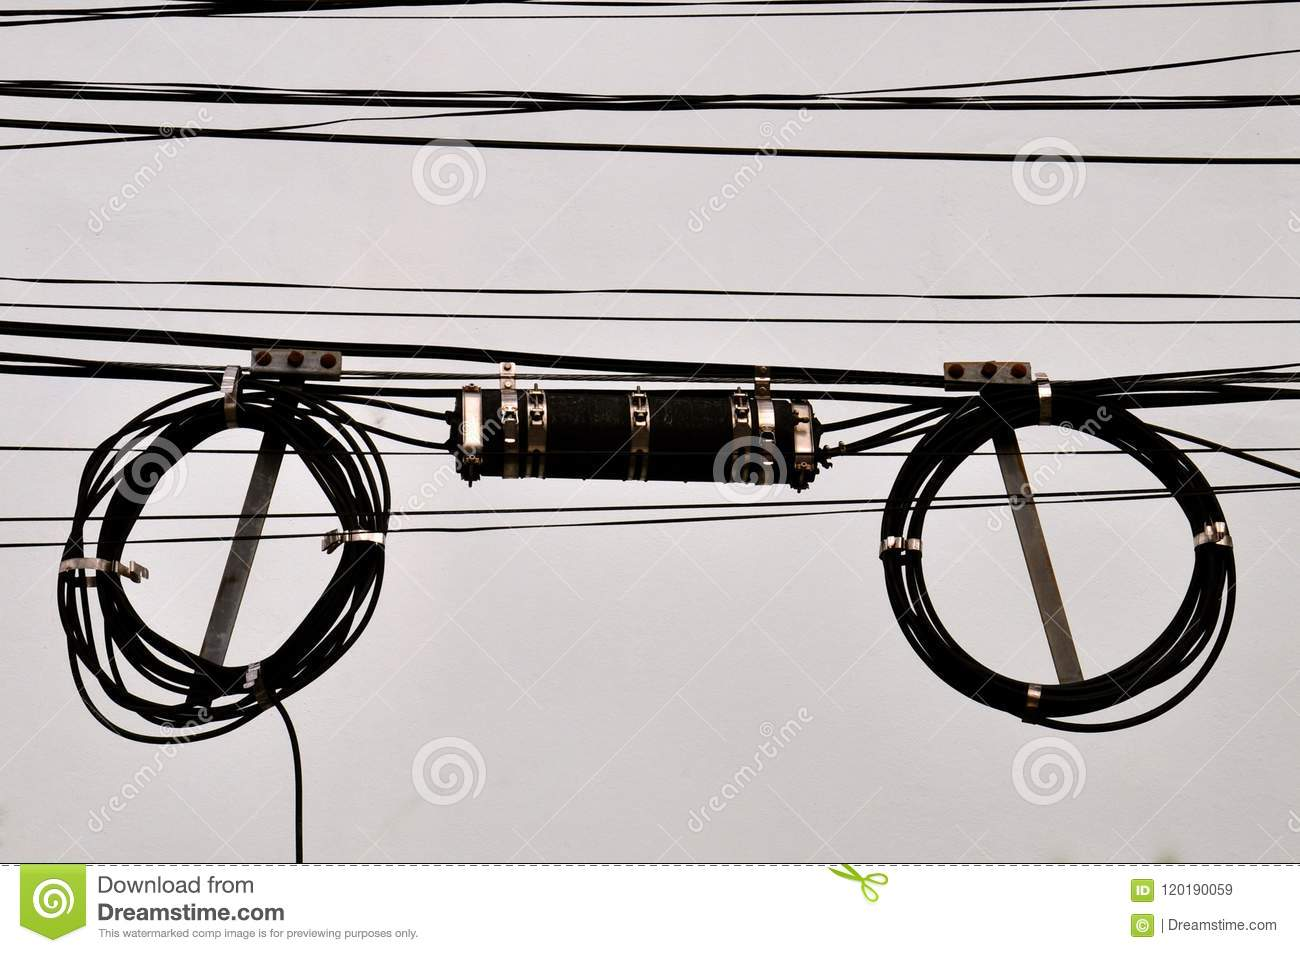 hight resolution of coiled telephone wires and junction box